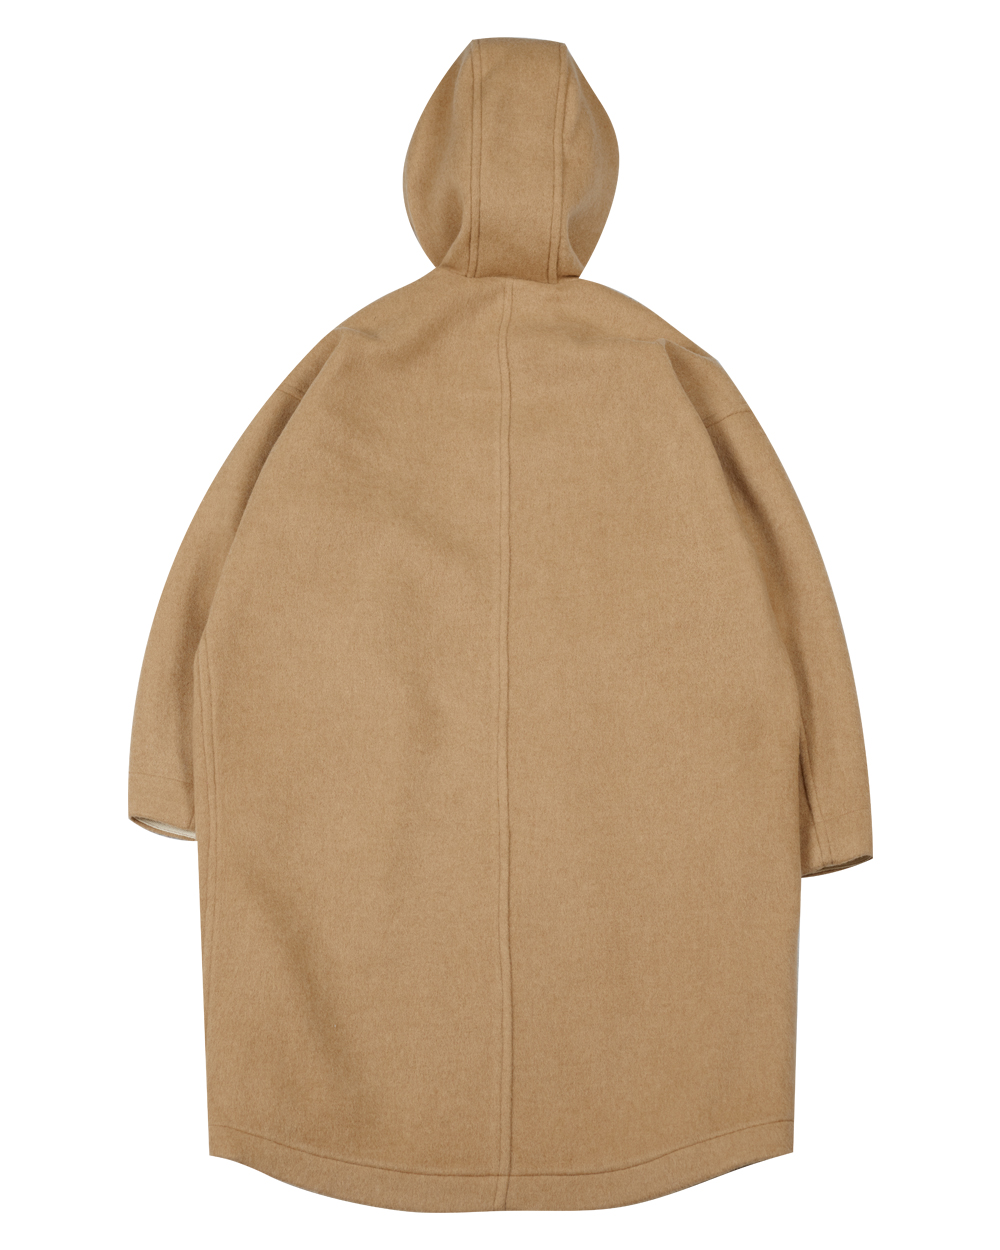 HOODED+WOOL+COAT+BEIGE+BACK.jpg